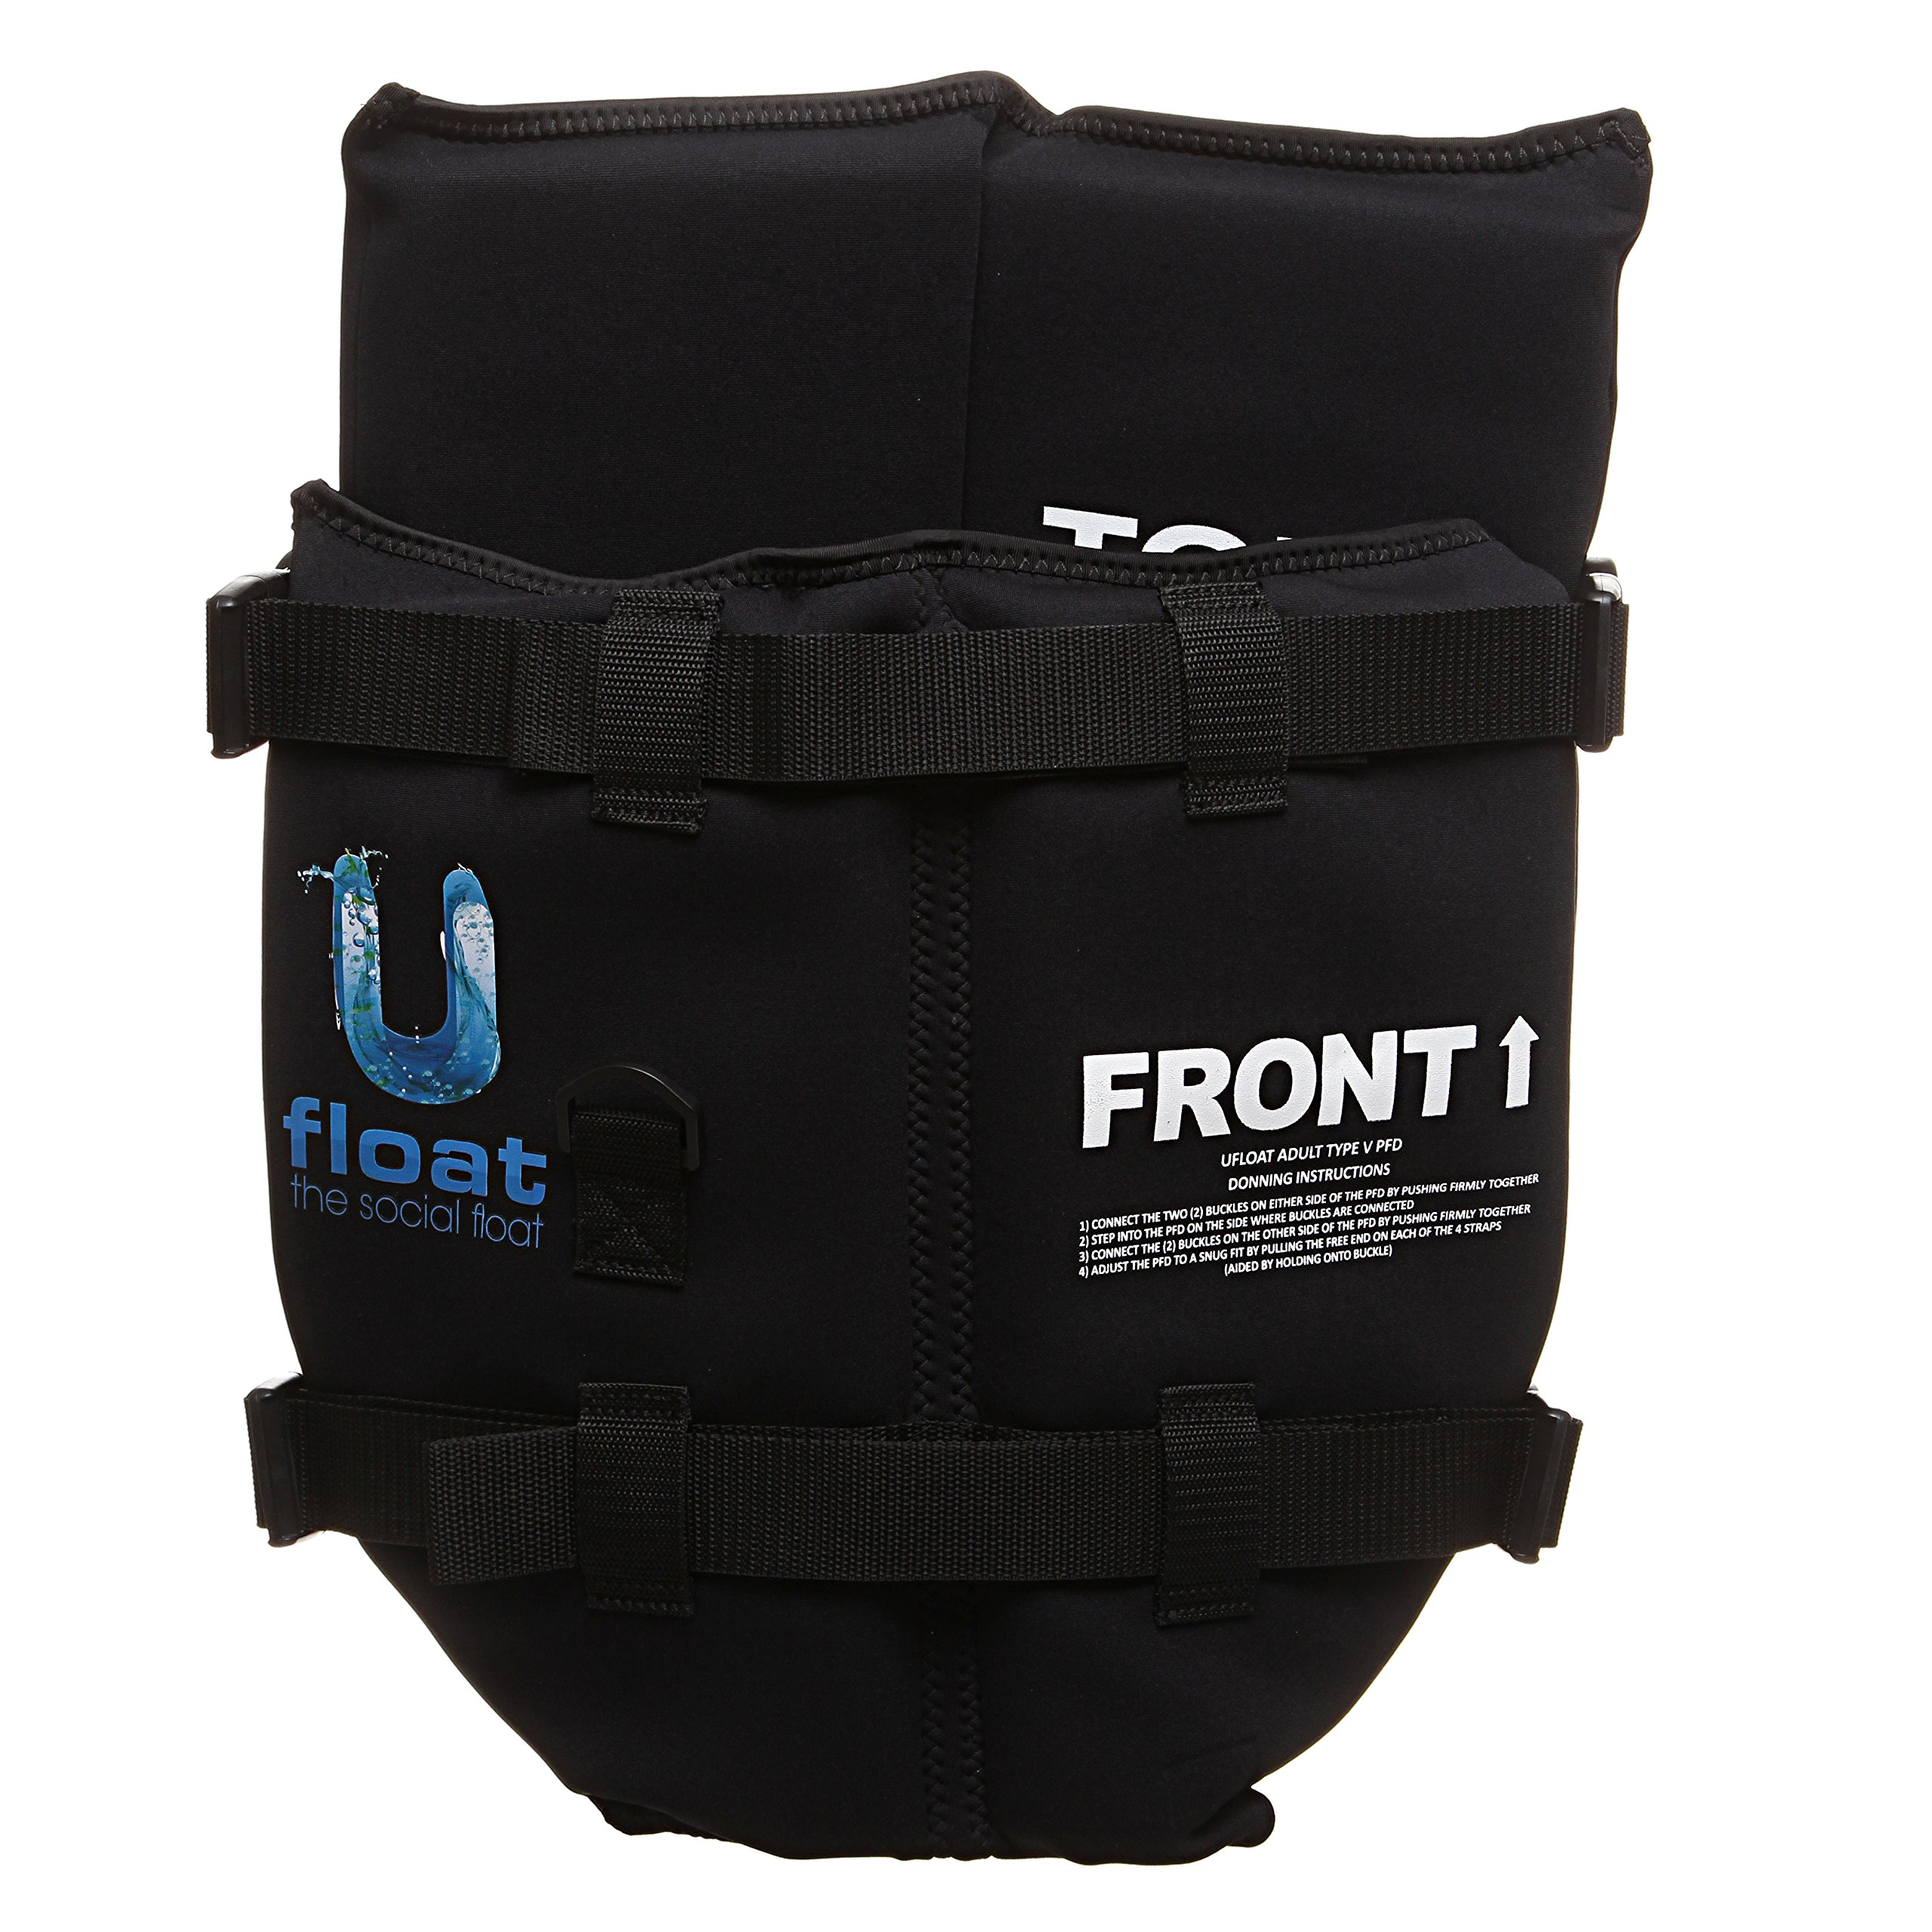 UFLOAT - USCG CERTIFIED PFD ('Upside Down' Life Jacket).The best way to cool off and relax in the water. 'THE SOCIAL FLOAT'.